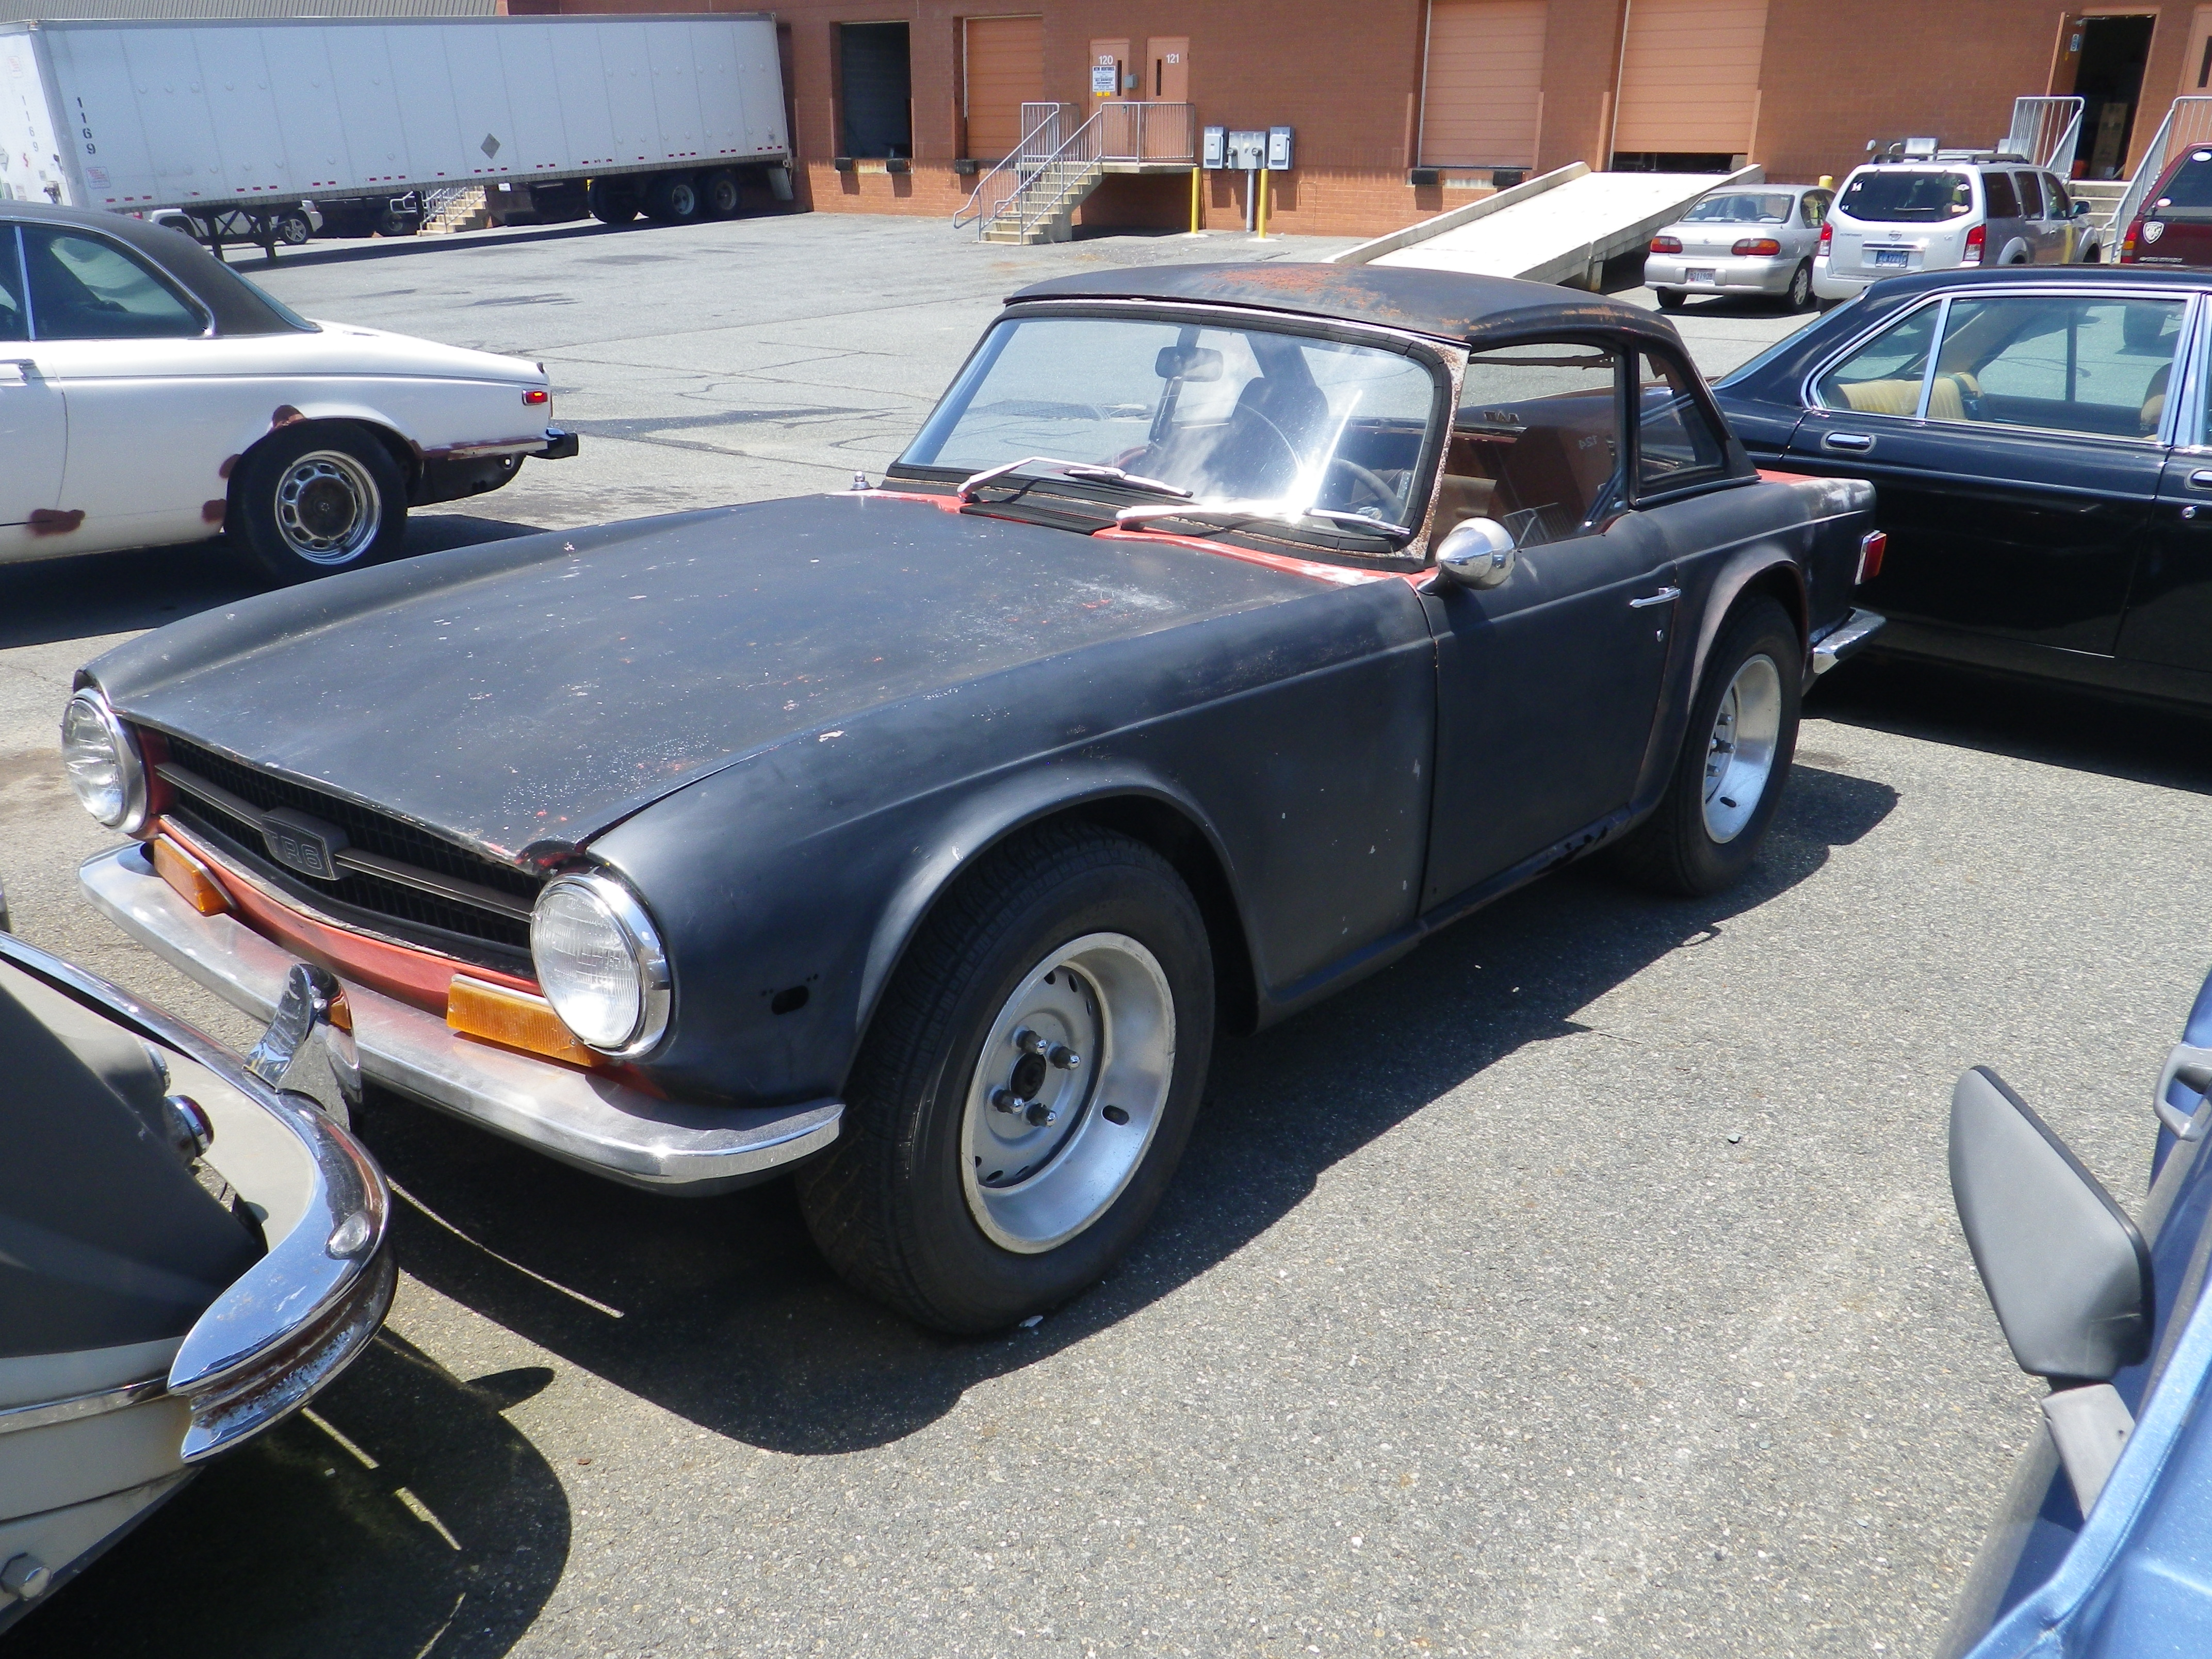 1972 Triumph Tr6 Hardtop Overdrive Project Car Sold Raspis British